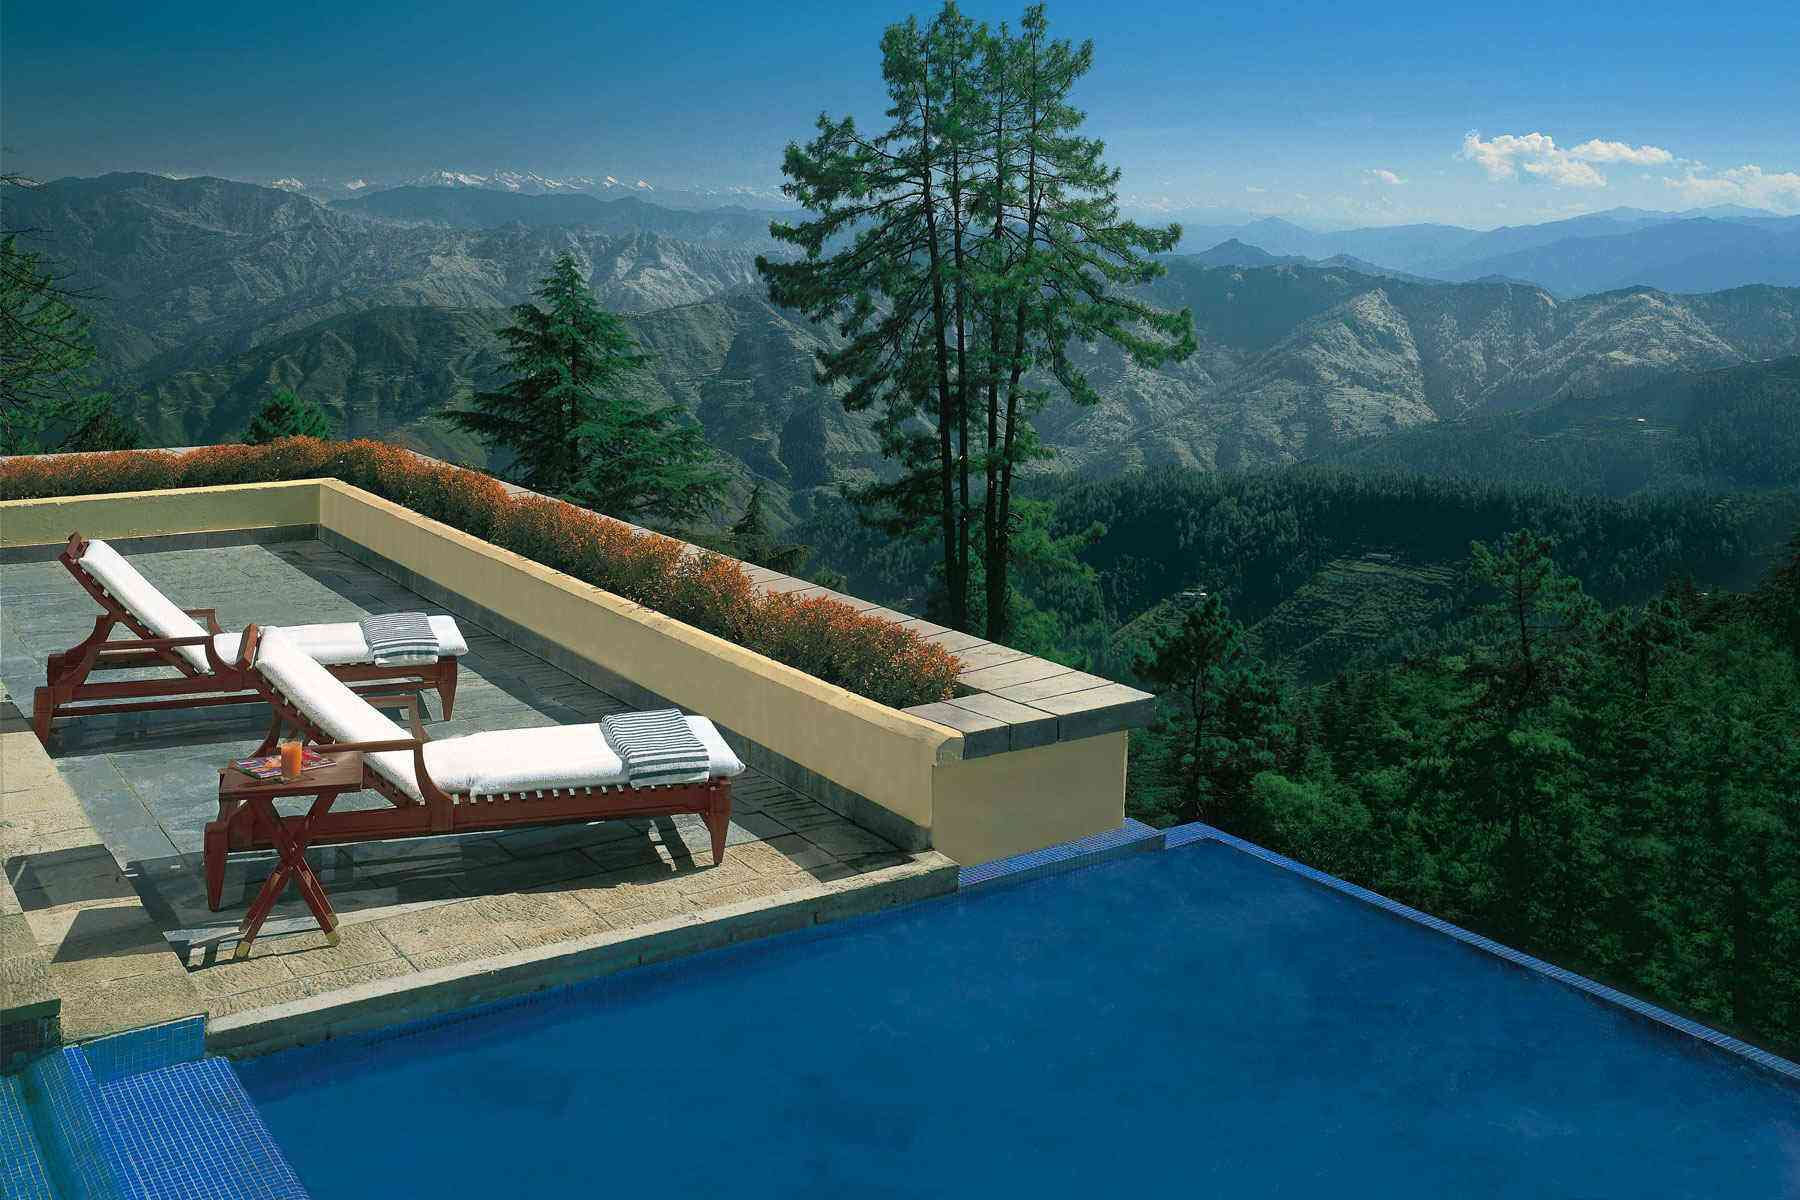 World\'s 15 Most Stunning Mountaintop Hotels – Fodors Travel Guide